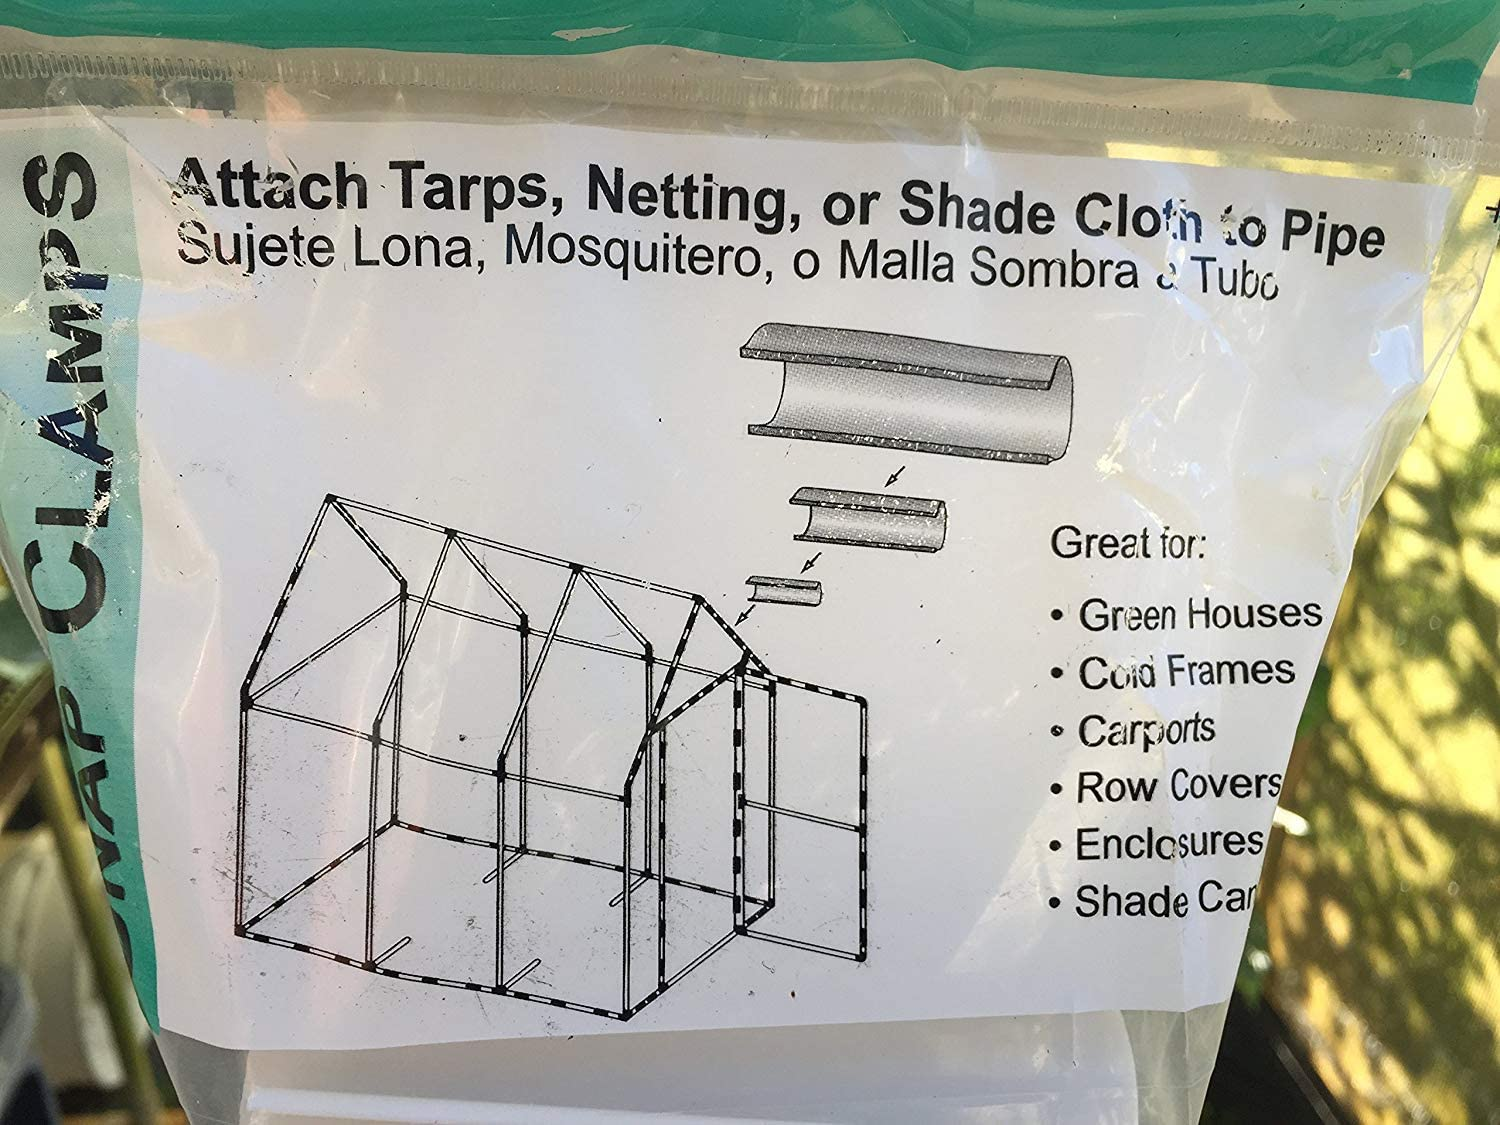 Snap Clamp 1/2 Inch X 4 Inches Wide For 1/2 PVC Pipe White 10 per Bag : Pipe Fittings : Garden & Outdoor